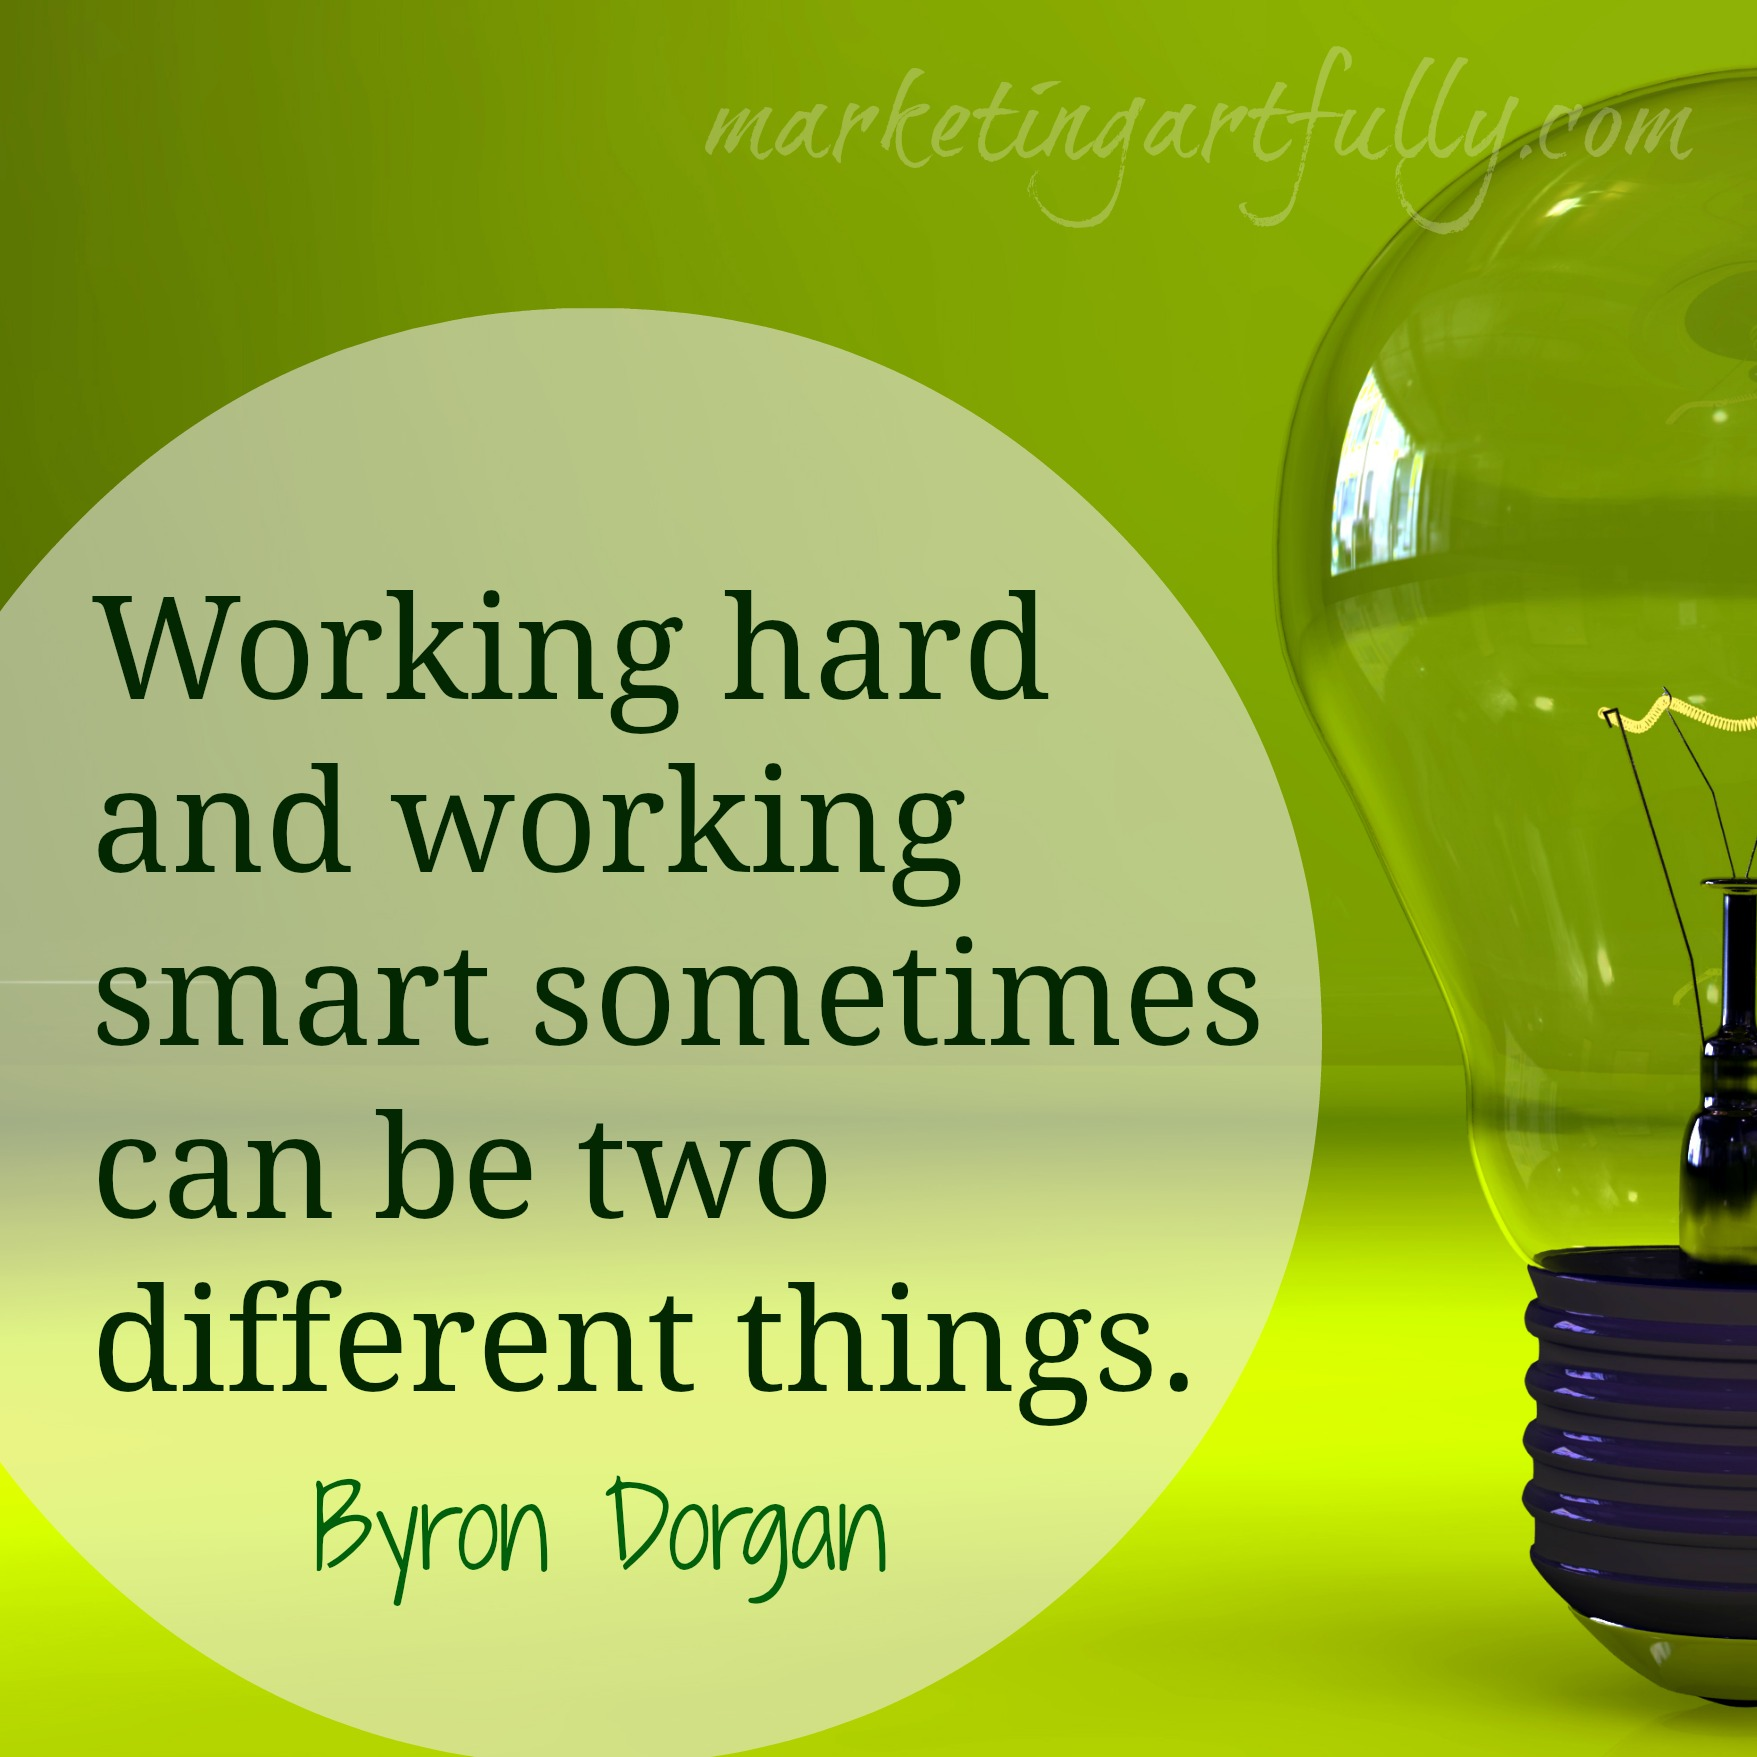 62 Top Work Quotes And Sayings